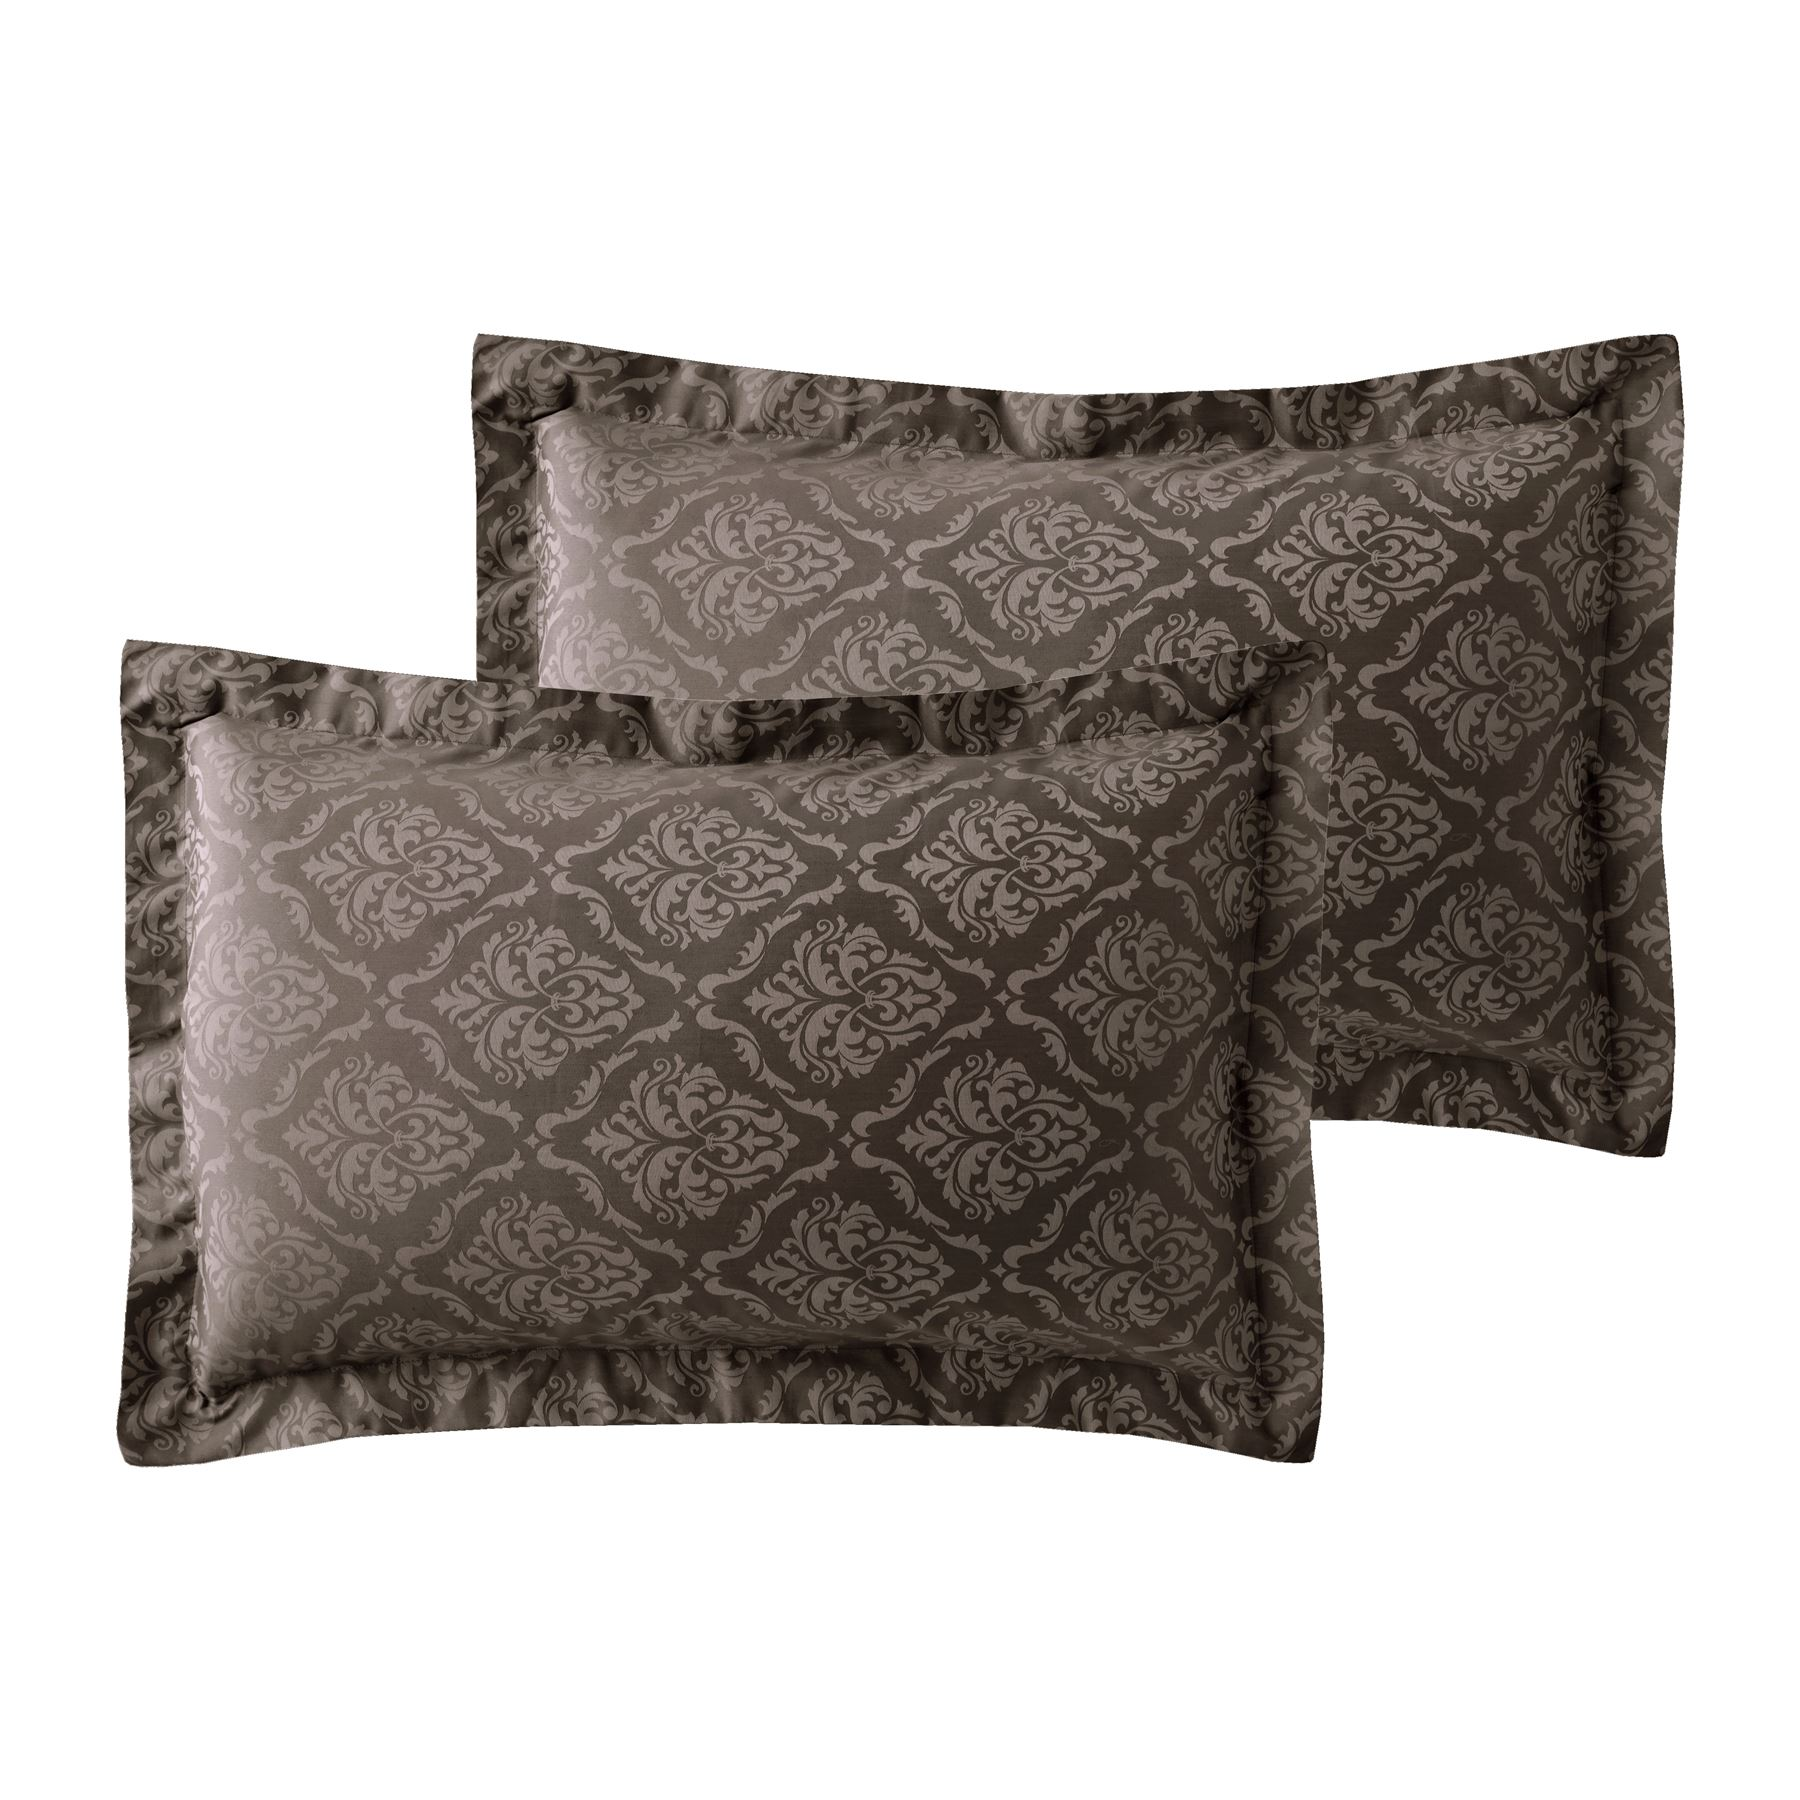 600-Thread-Count-Jacquard-Cotton-Rich-Damask-Duvet-Cover-With-Oxford-Pillowcases thumbnail 5